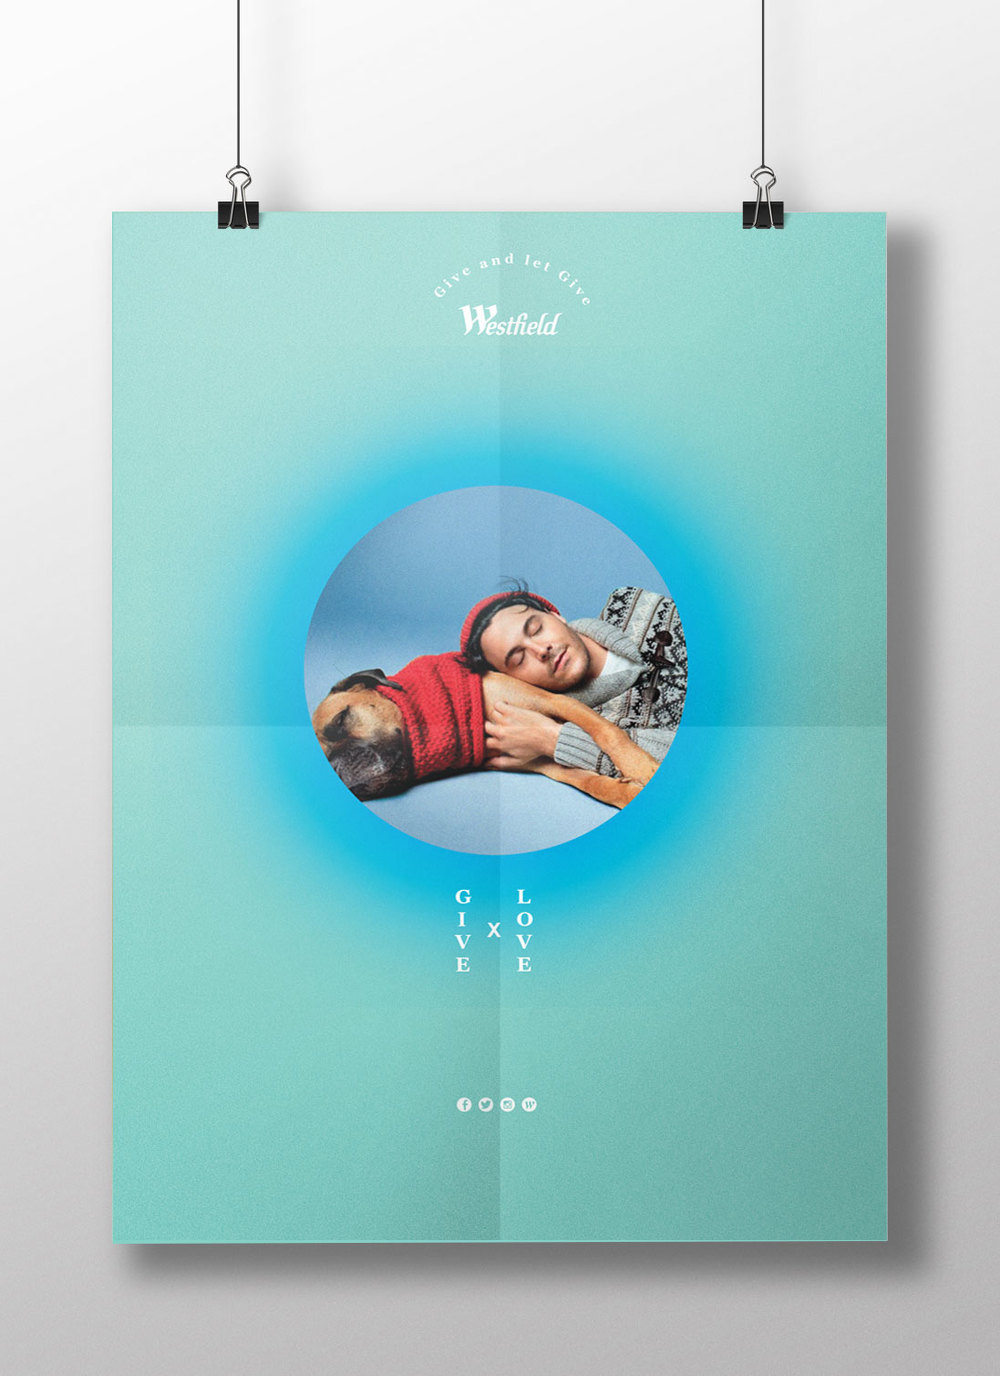 poster_mockup_holiday_3.jpg